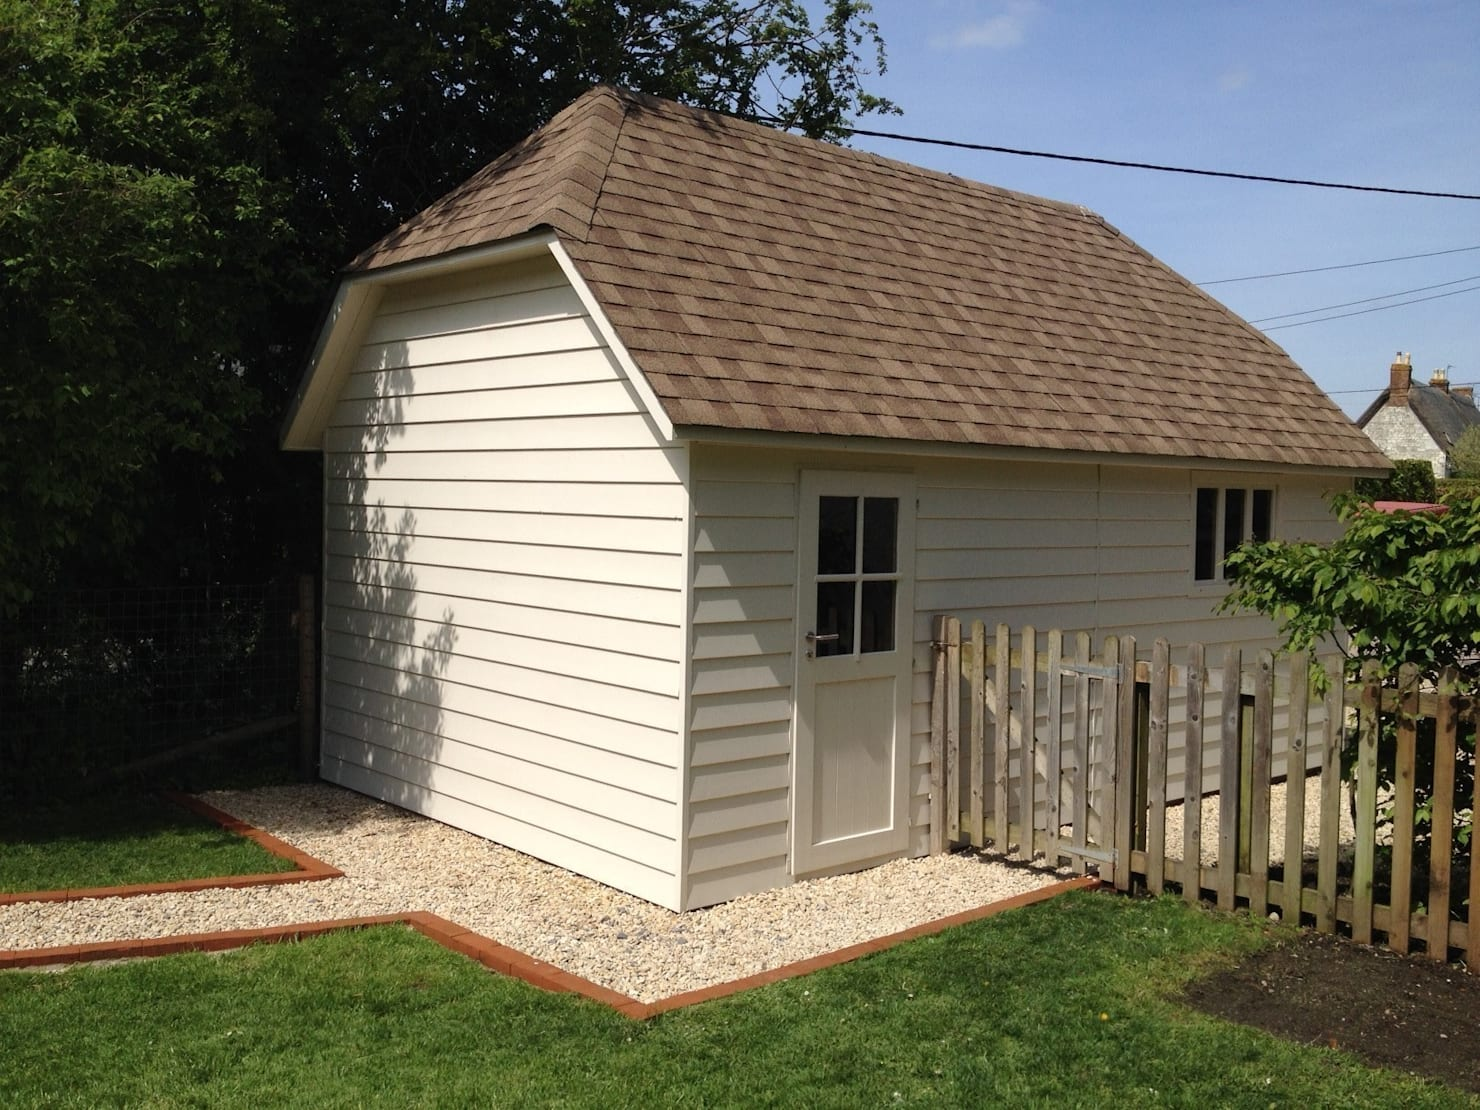 Woodworking: Build a shed with your own hands!